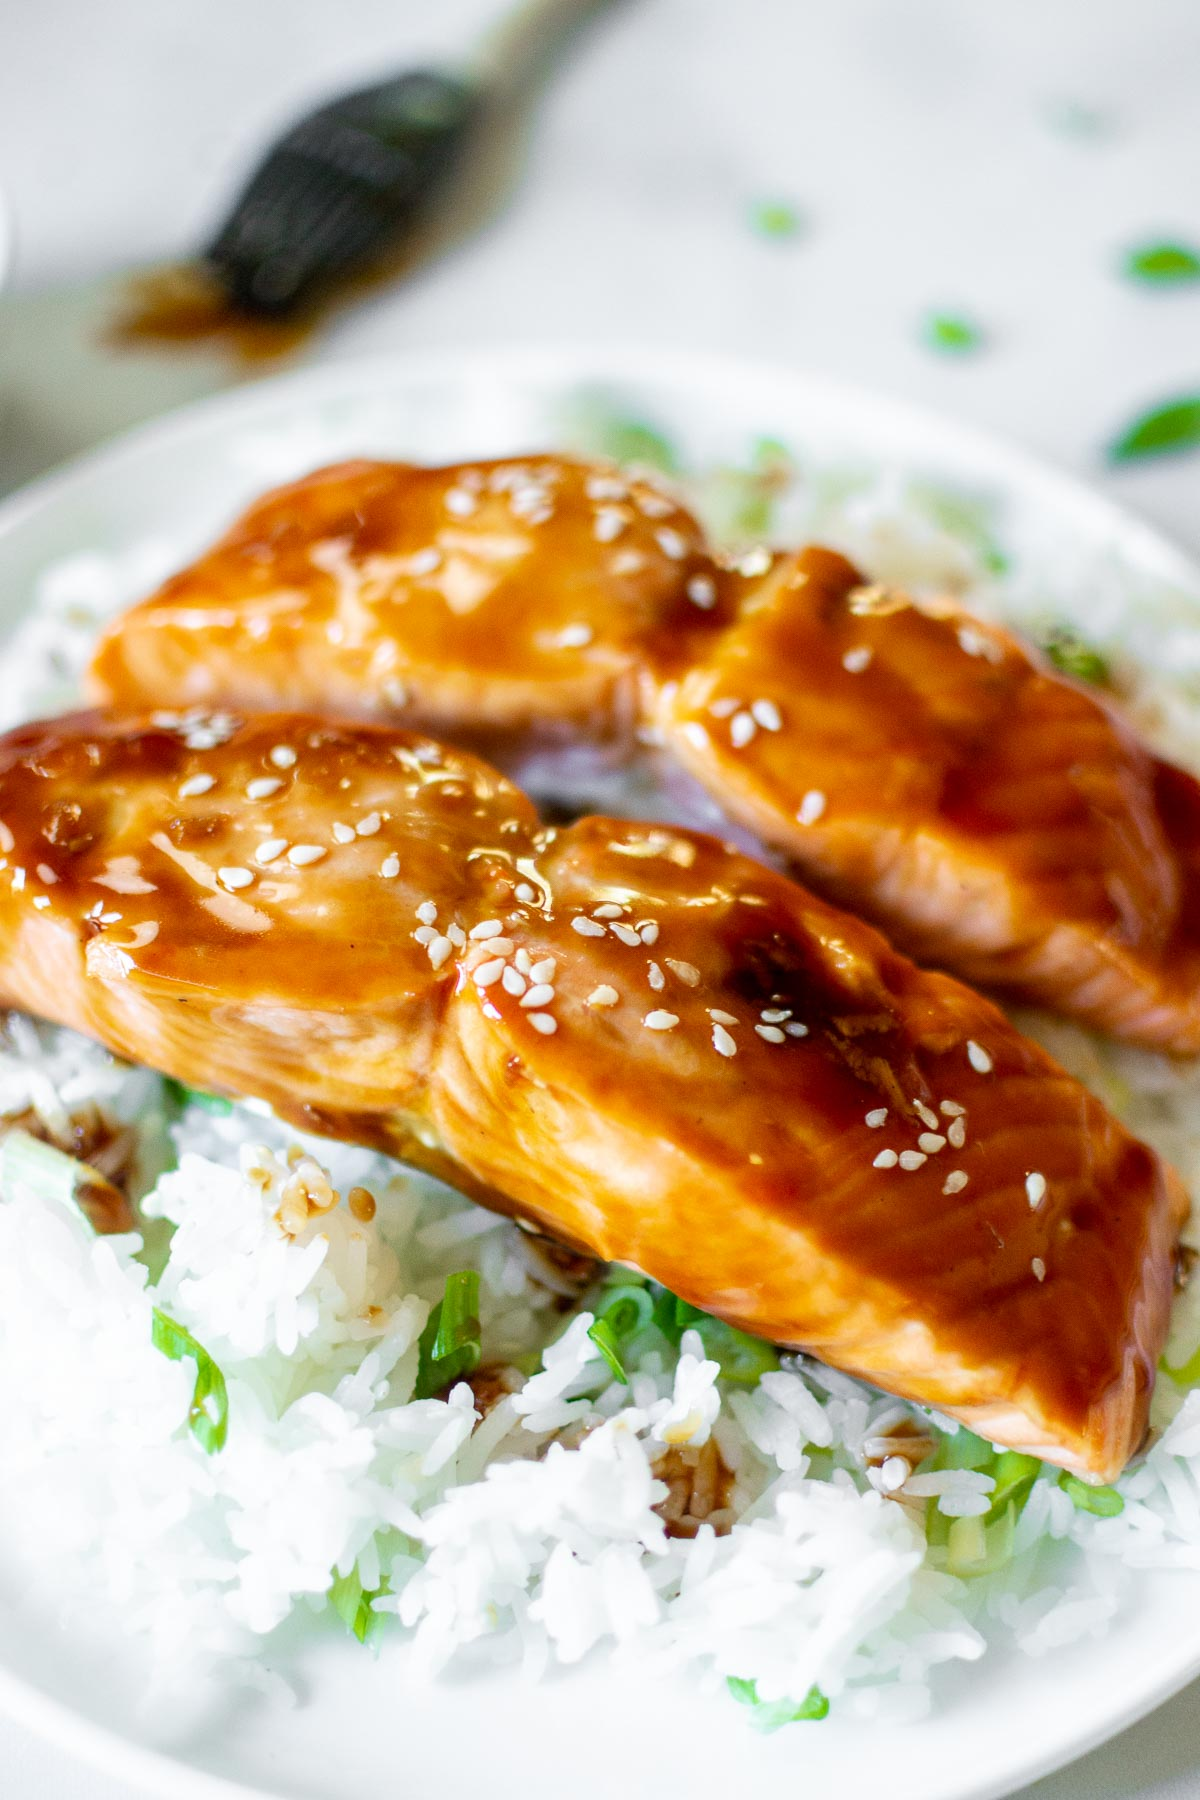 Two Teriyaki salmon filets on a plate with rice